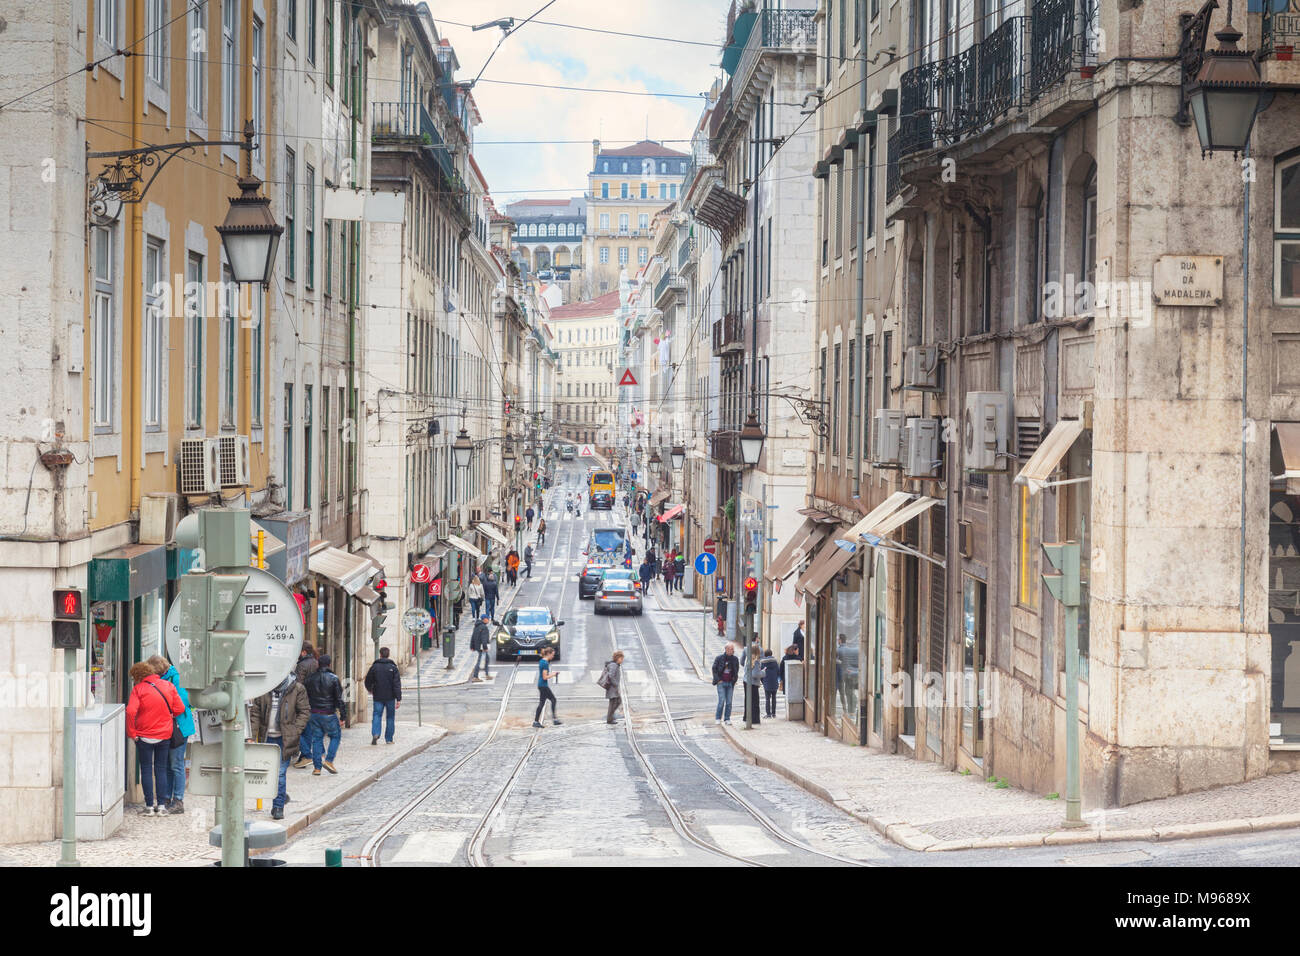 1 March 2018: Lisbon, Portugal - Rua da Conceicao, a busy street in the central city. Stock Photo